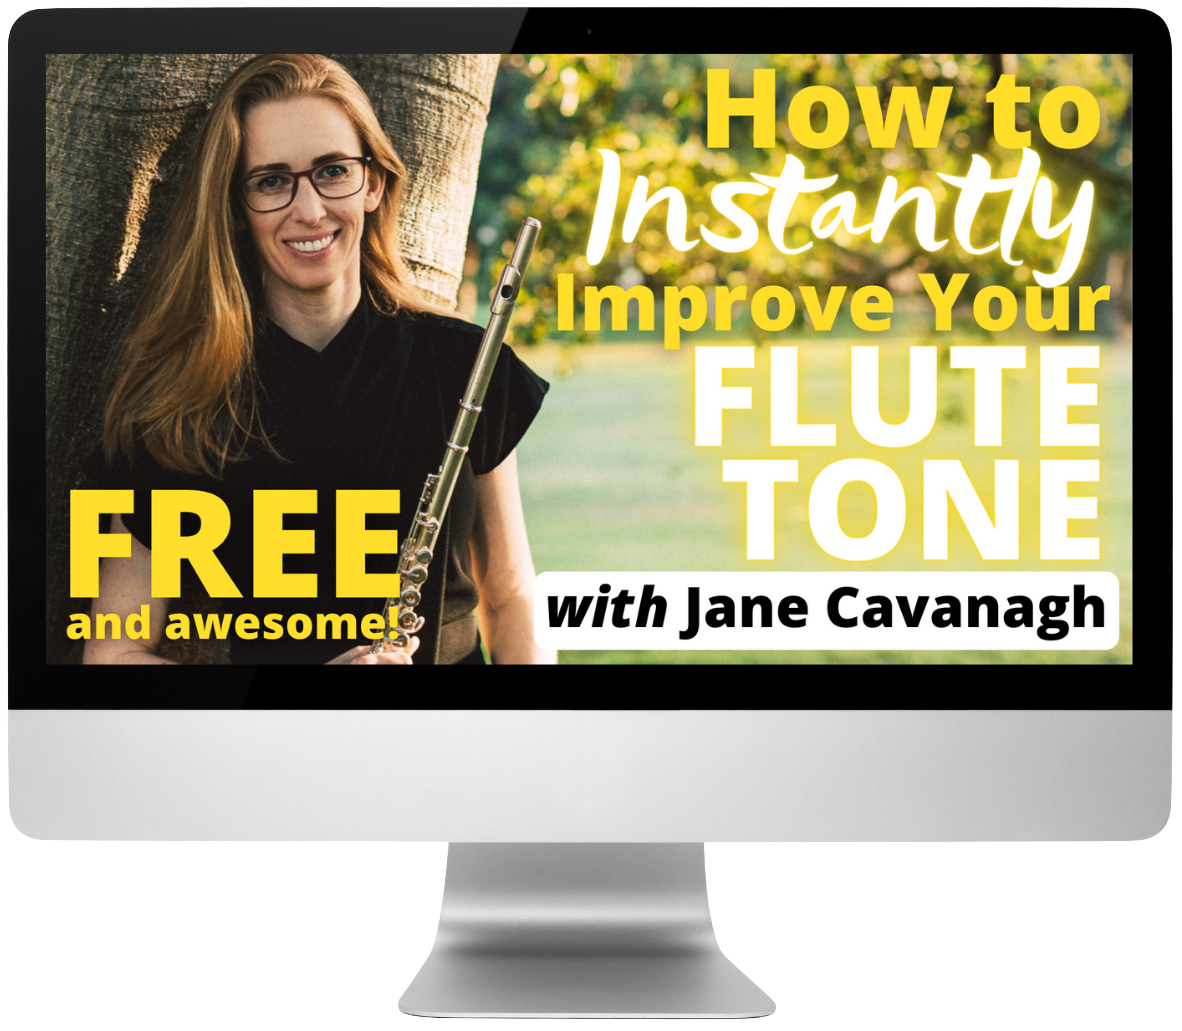 How to instantly improve your flute tone